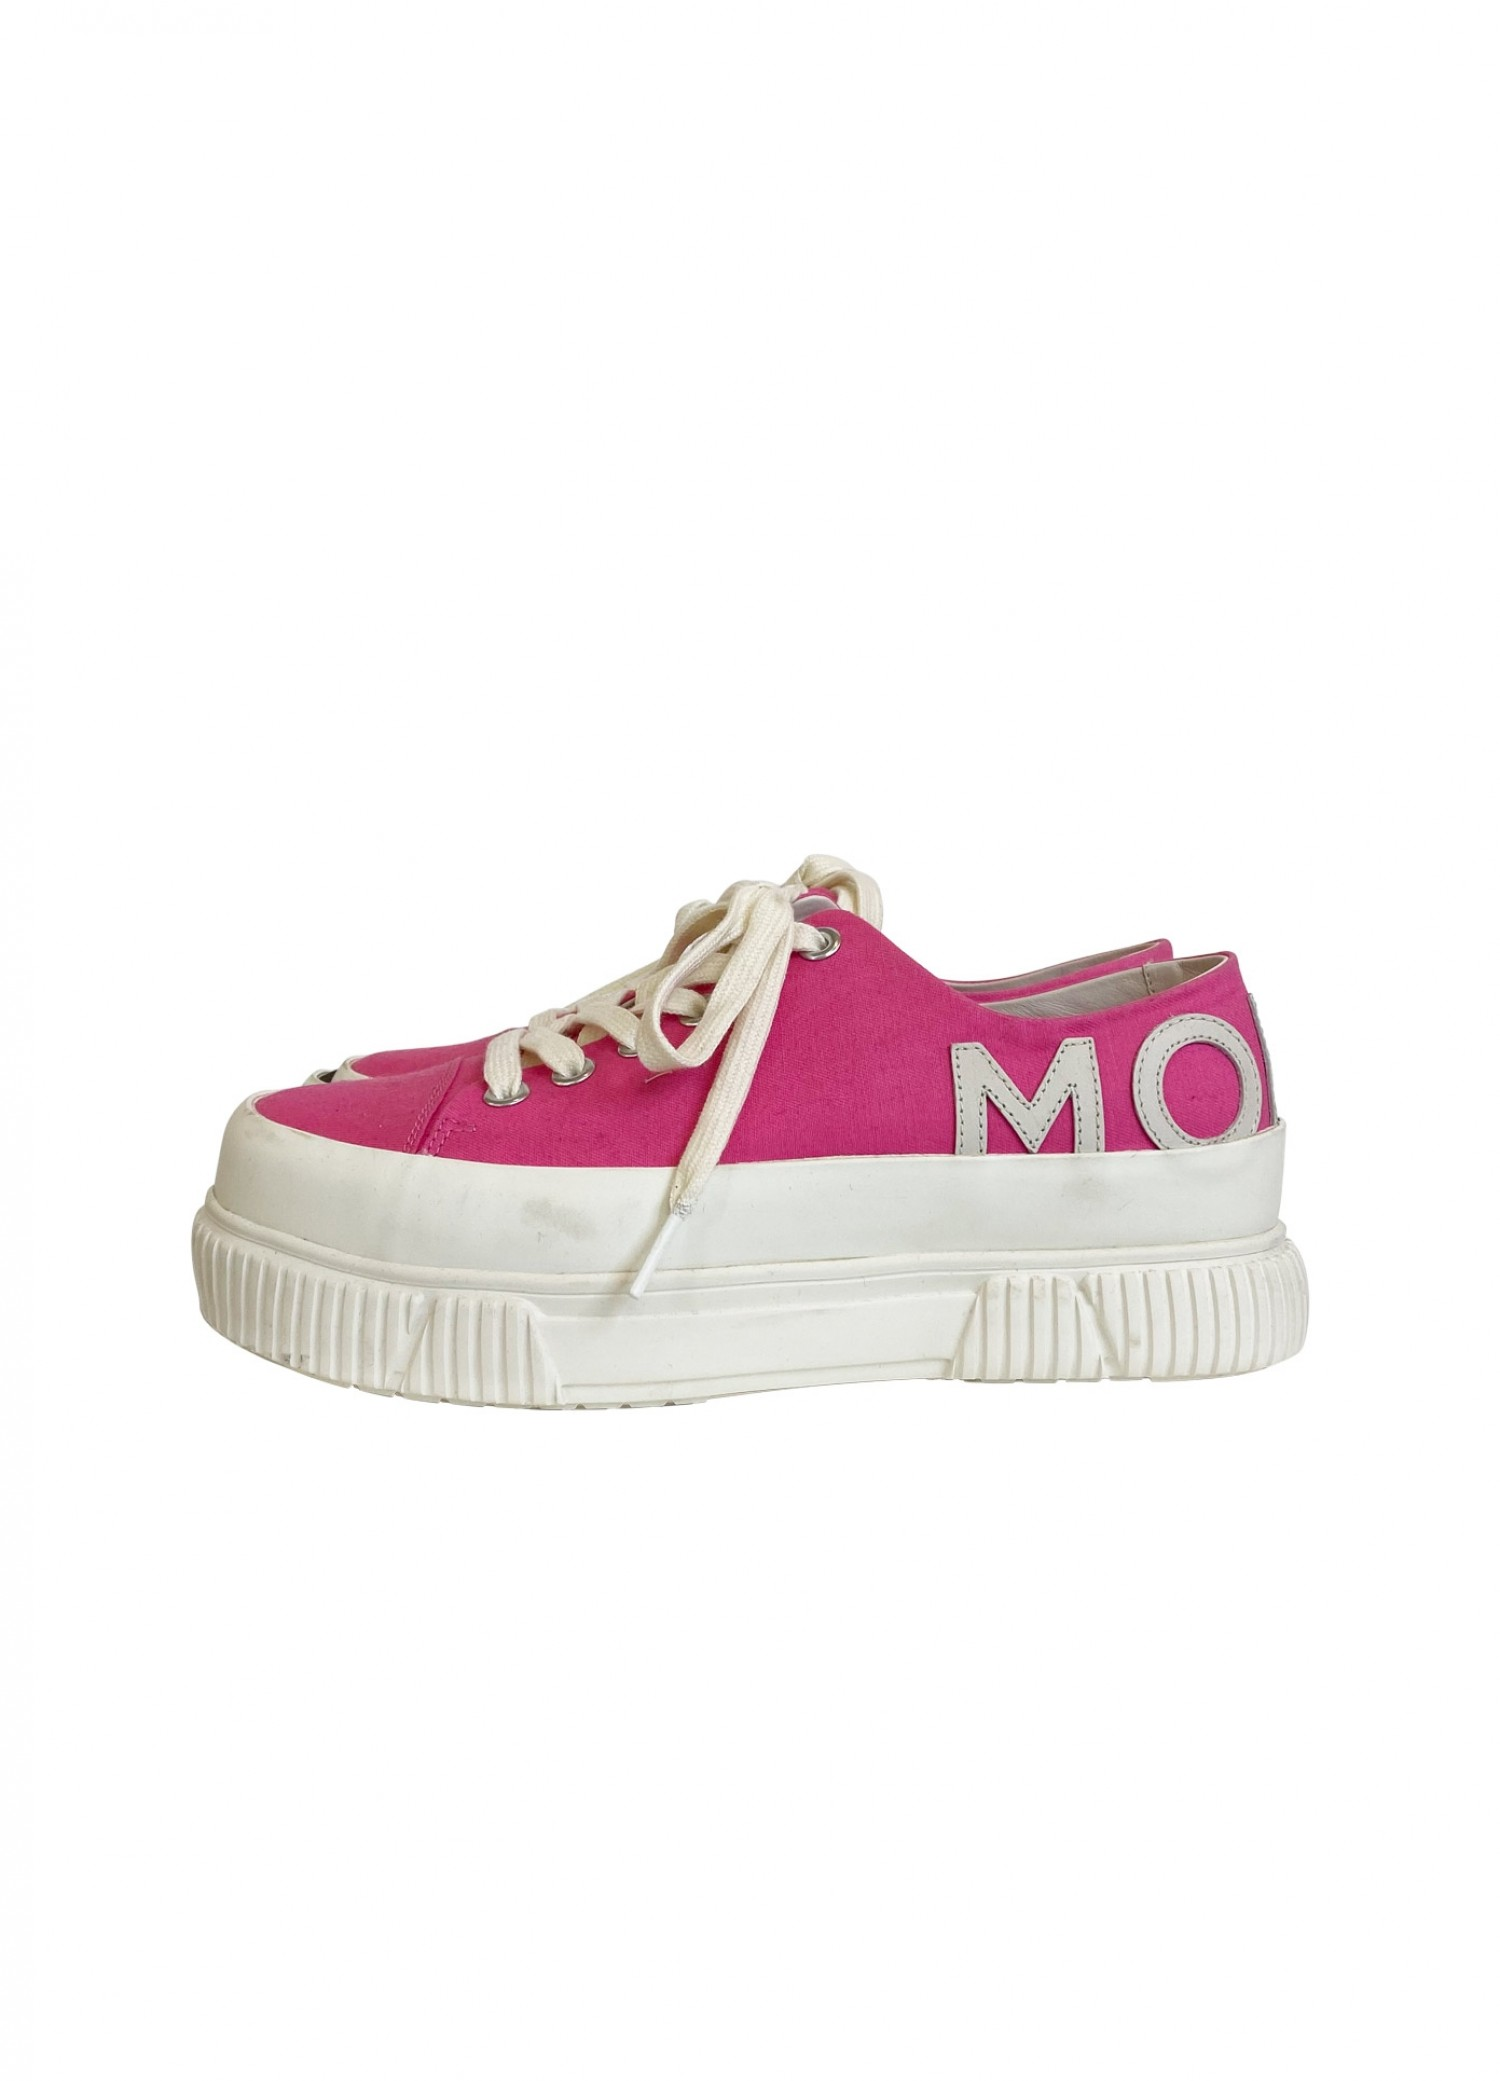 BOTH x MONSE Classic Platform Shoe in Hot Pink Side View